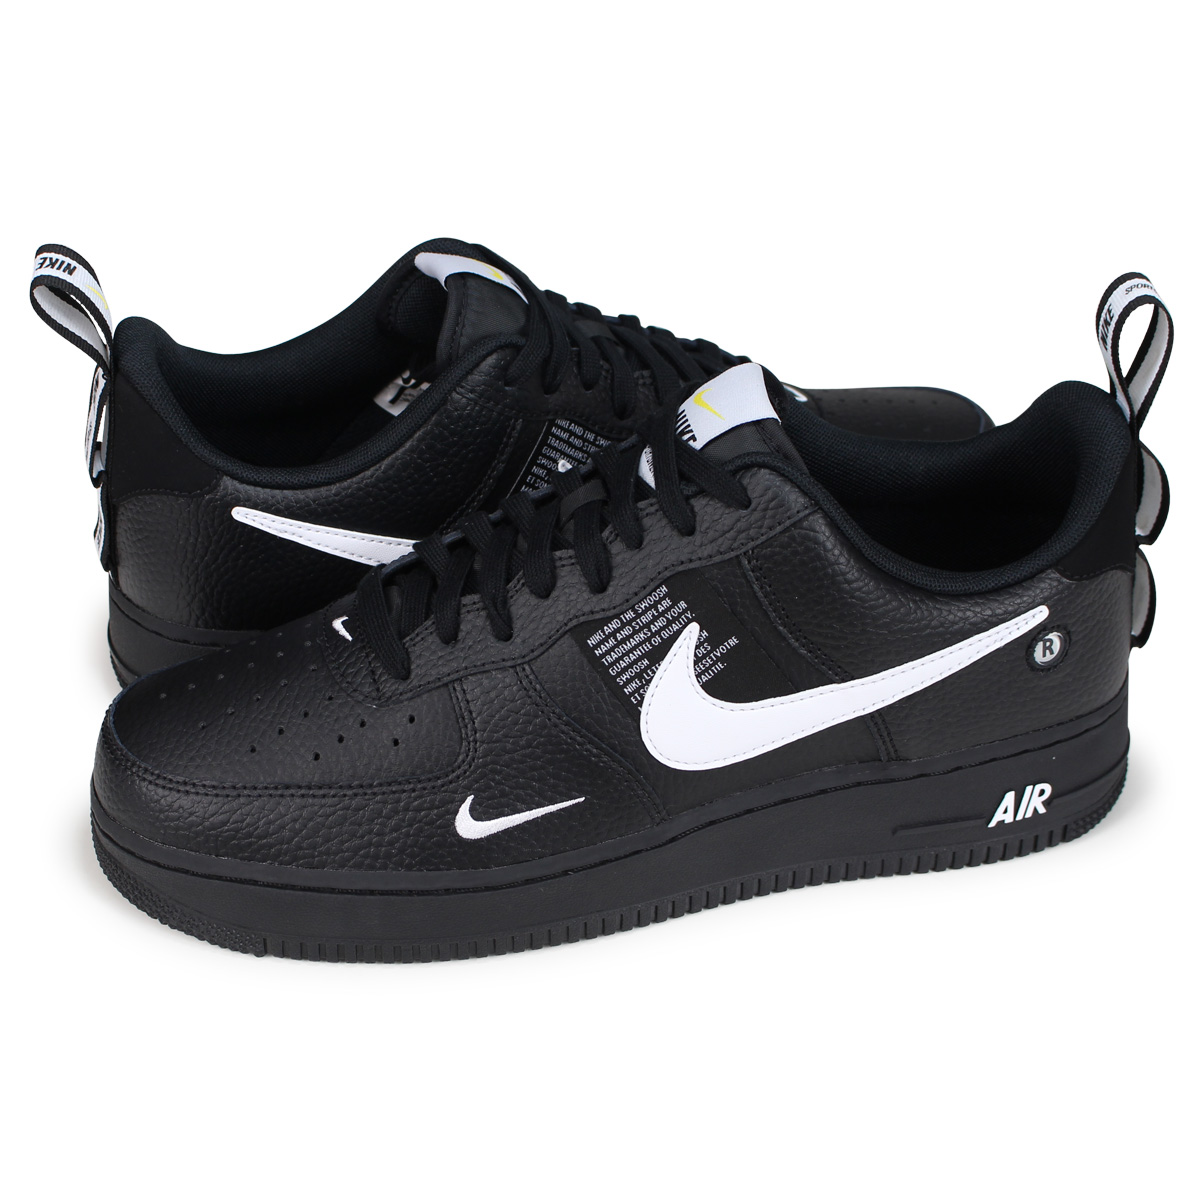 detailed pictures new concept order online Goods Lab: NIKE AIR FORCE 1 07 LV8 UTILITY Nike air force 1 ...